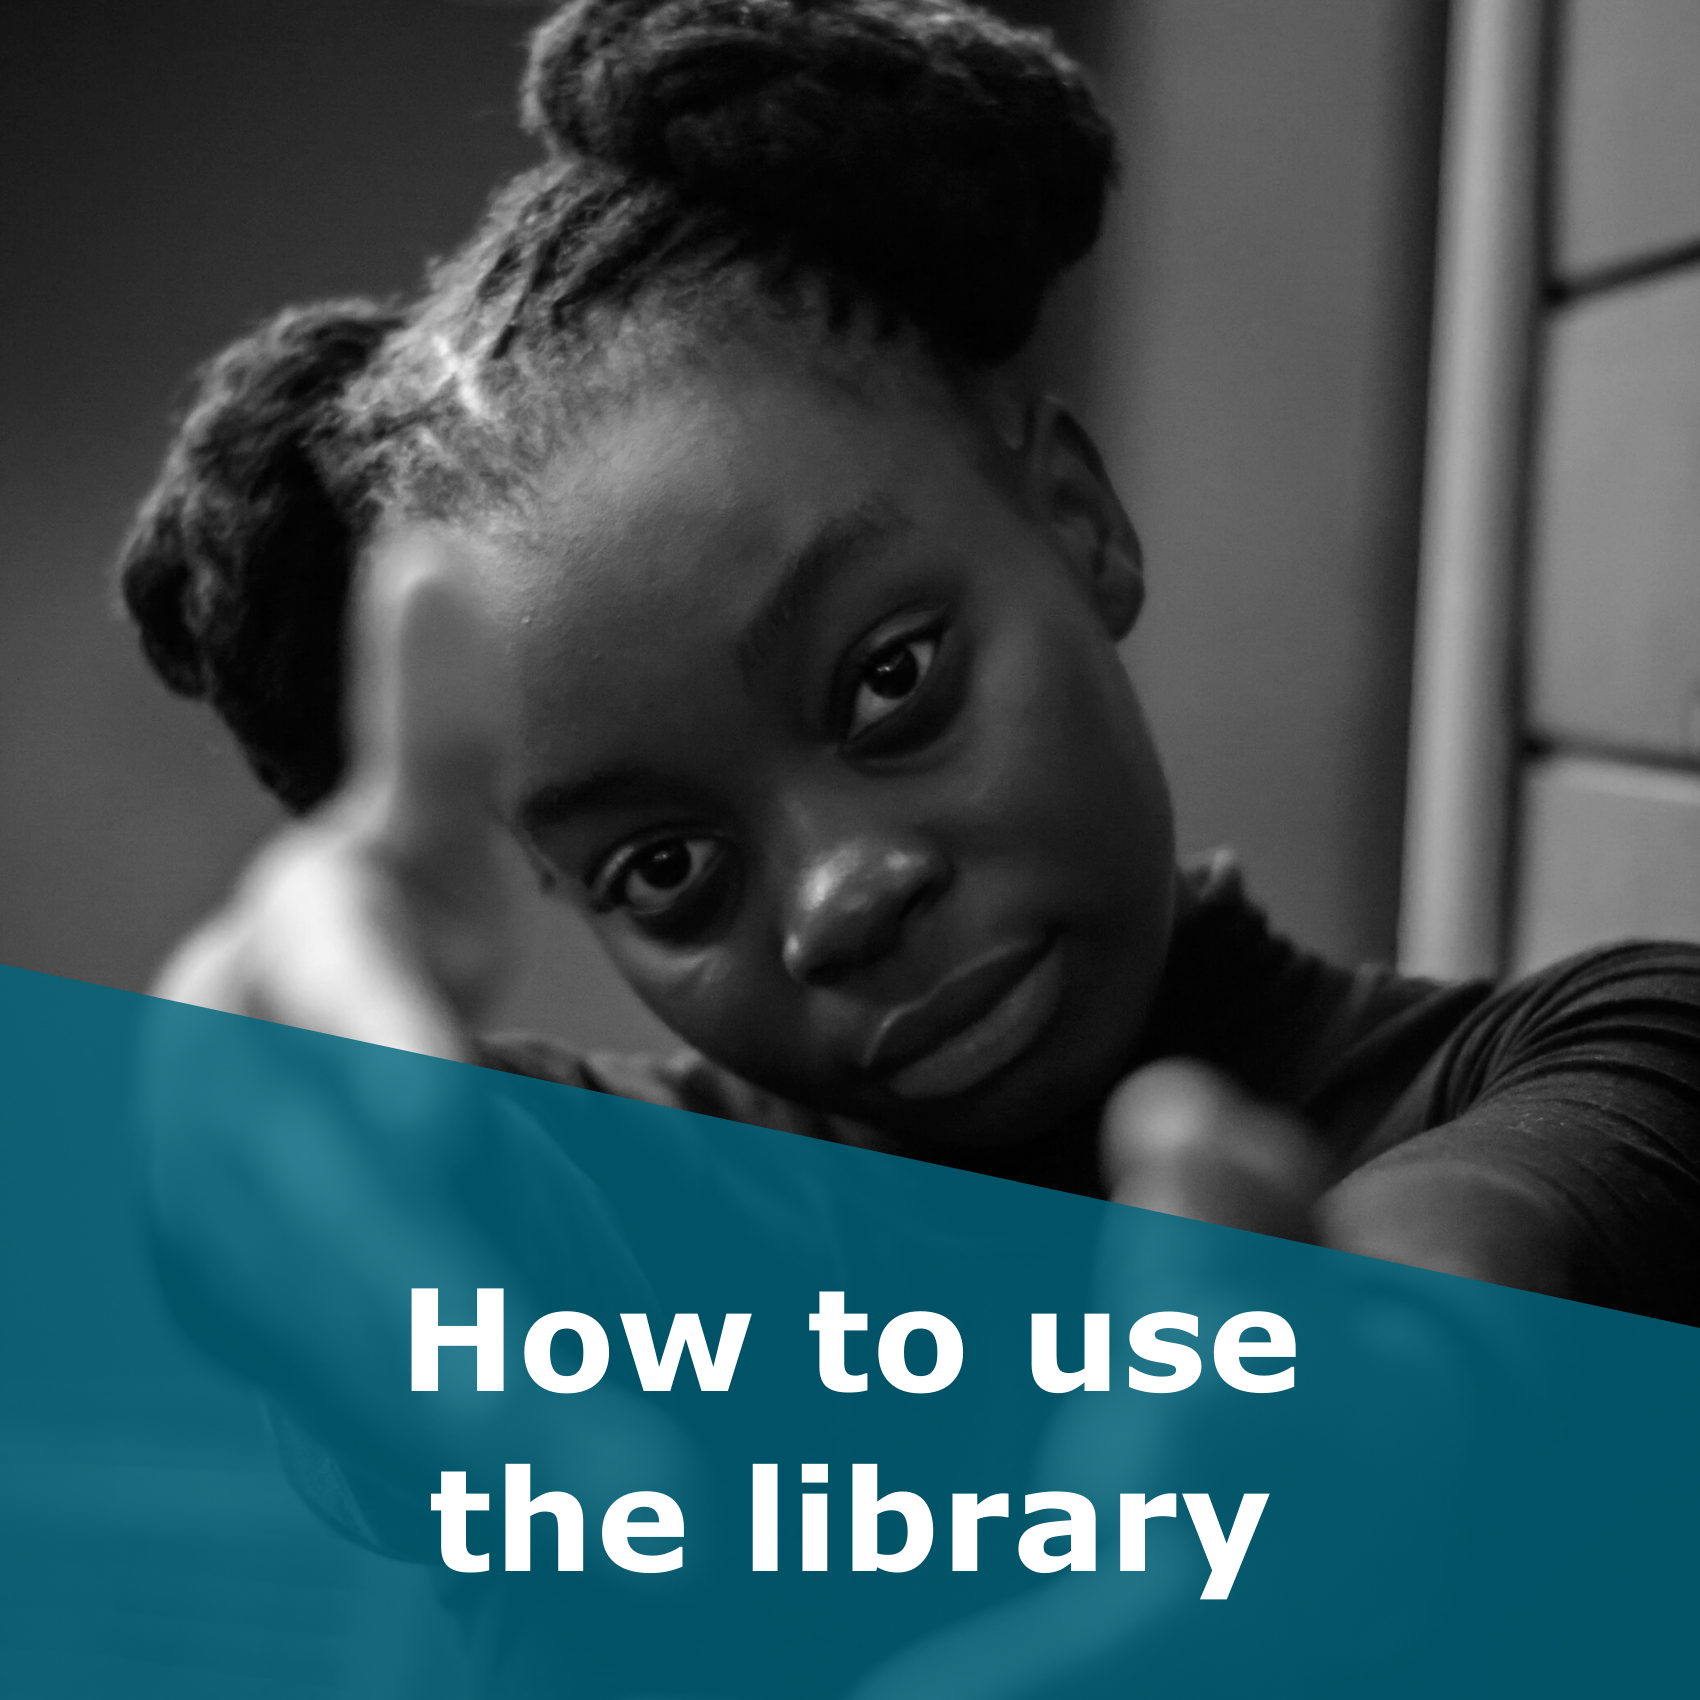 How to use the library?